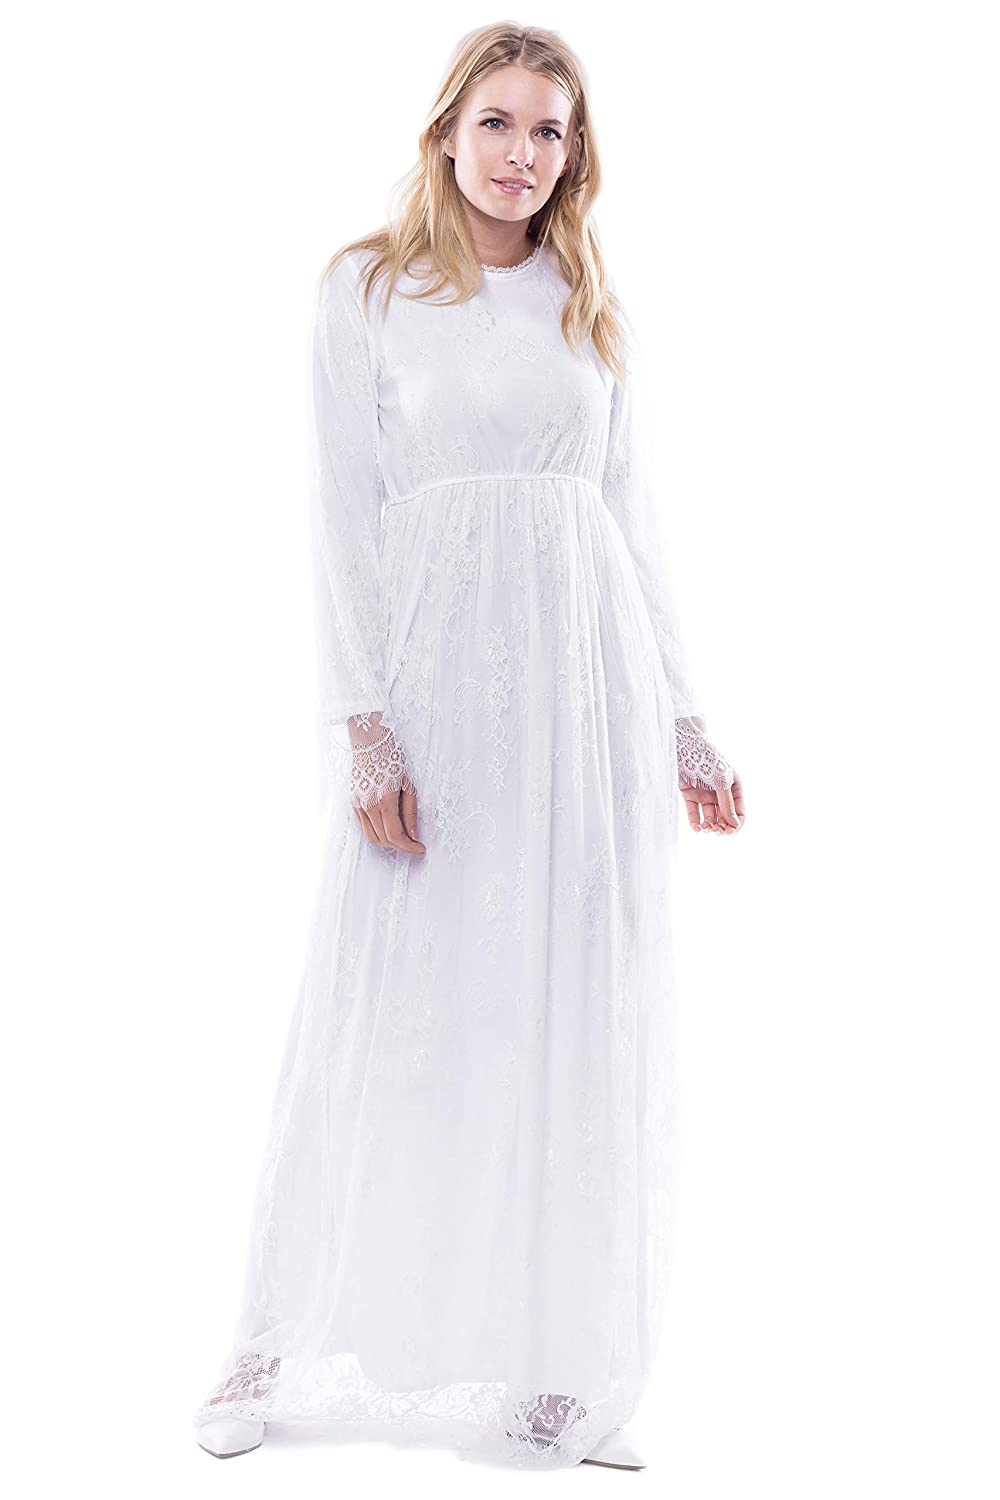 1920s Downton Abbey Dresses ModWhite Jasmine White Temple Dress $79.00 AT vintagedancer.com